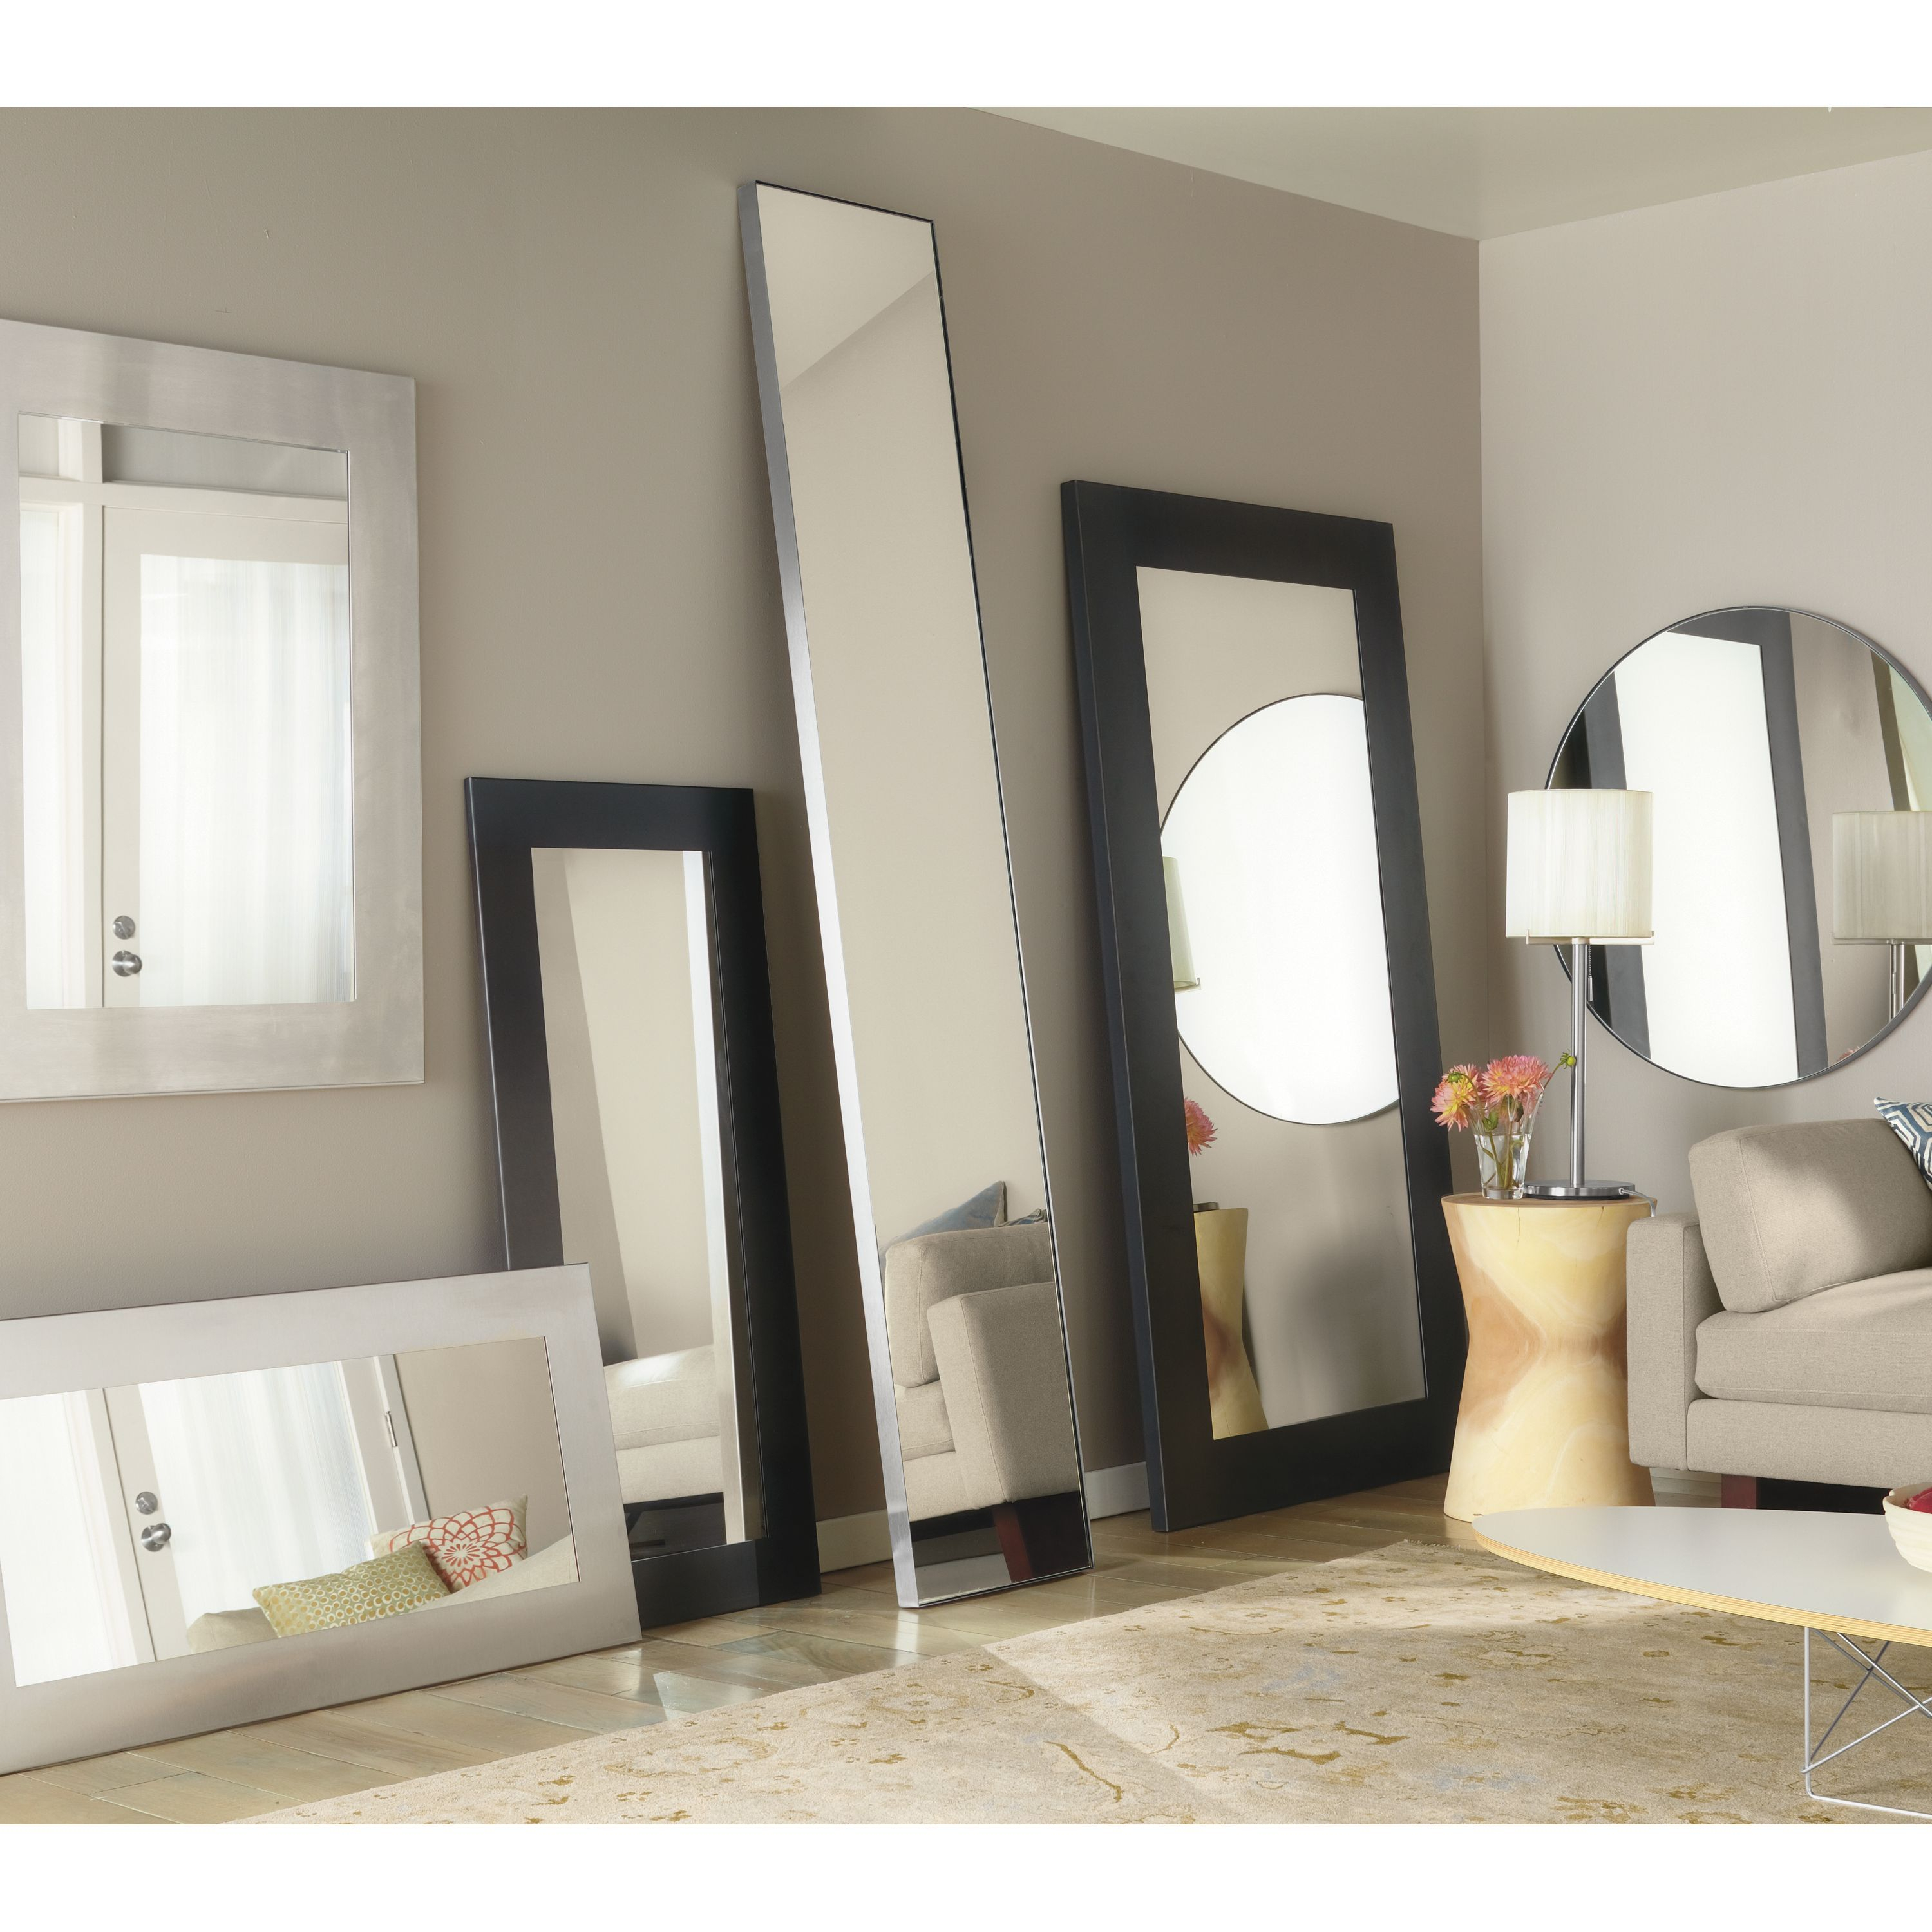 Manhattan Leaning Mirrors In Natural Steel | Products In pertaining to Leaning Mirrors (Image 25 of 30)